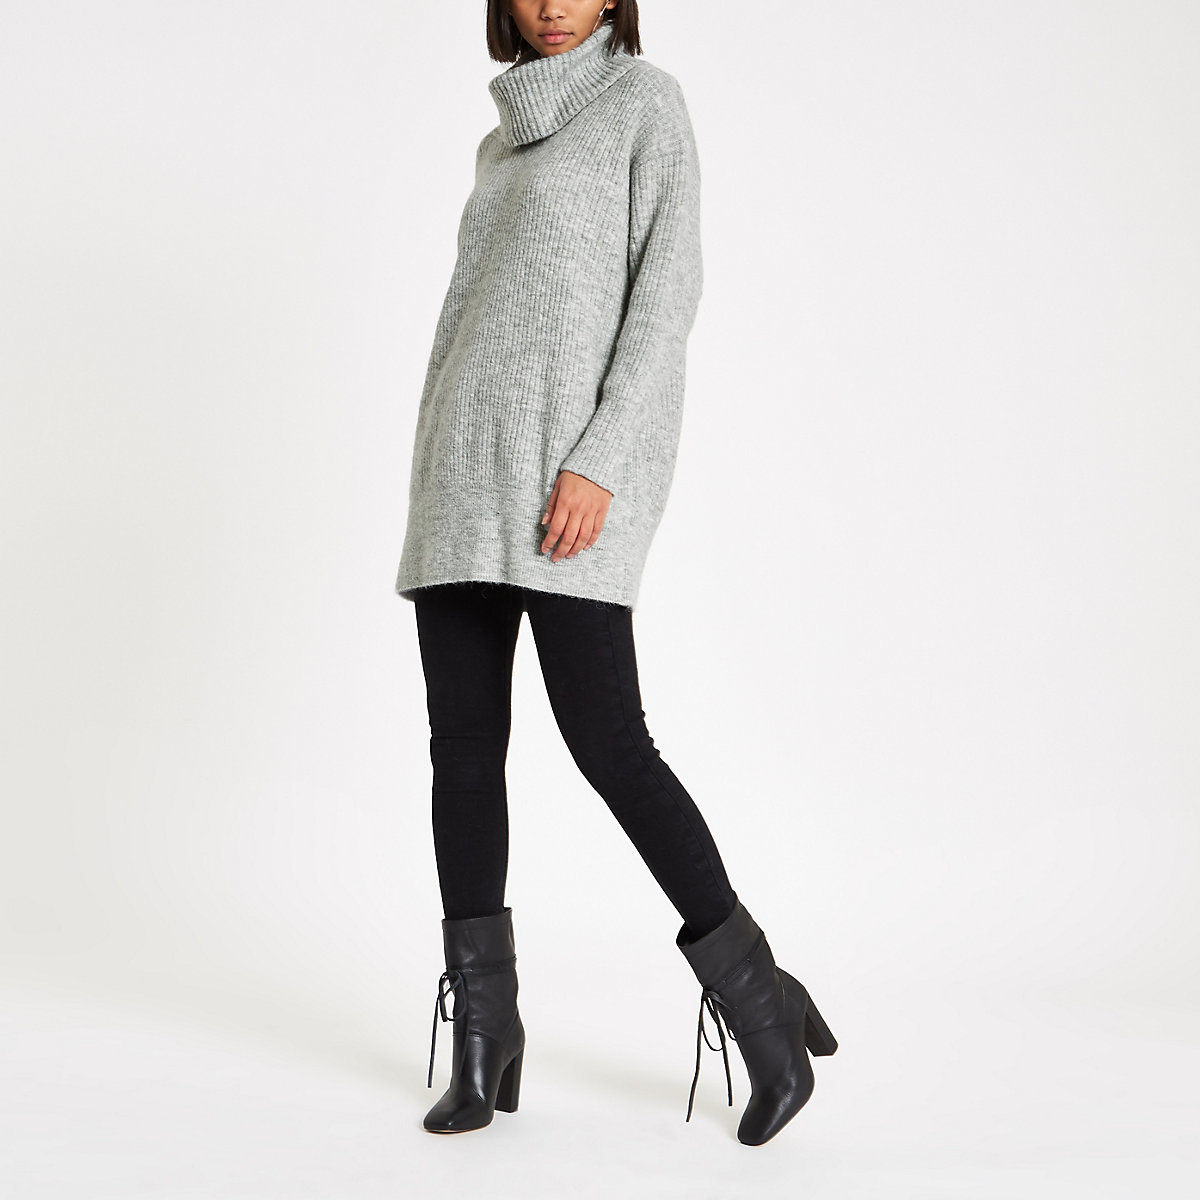 Light grey knit roll neck jumper dress